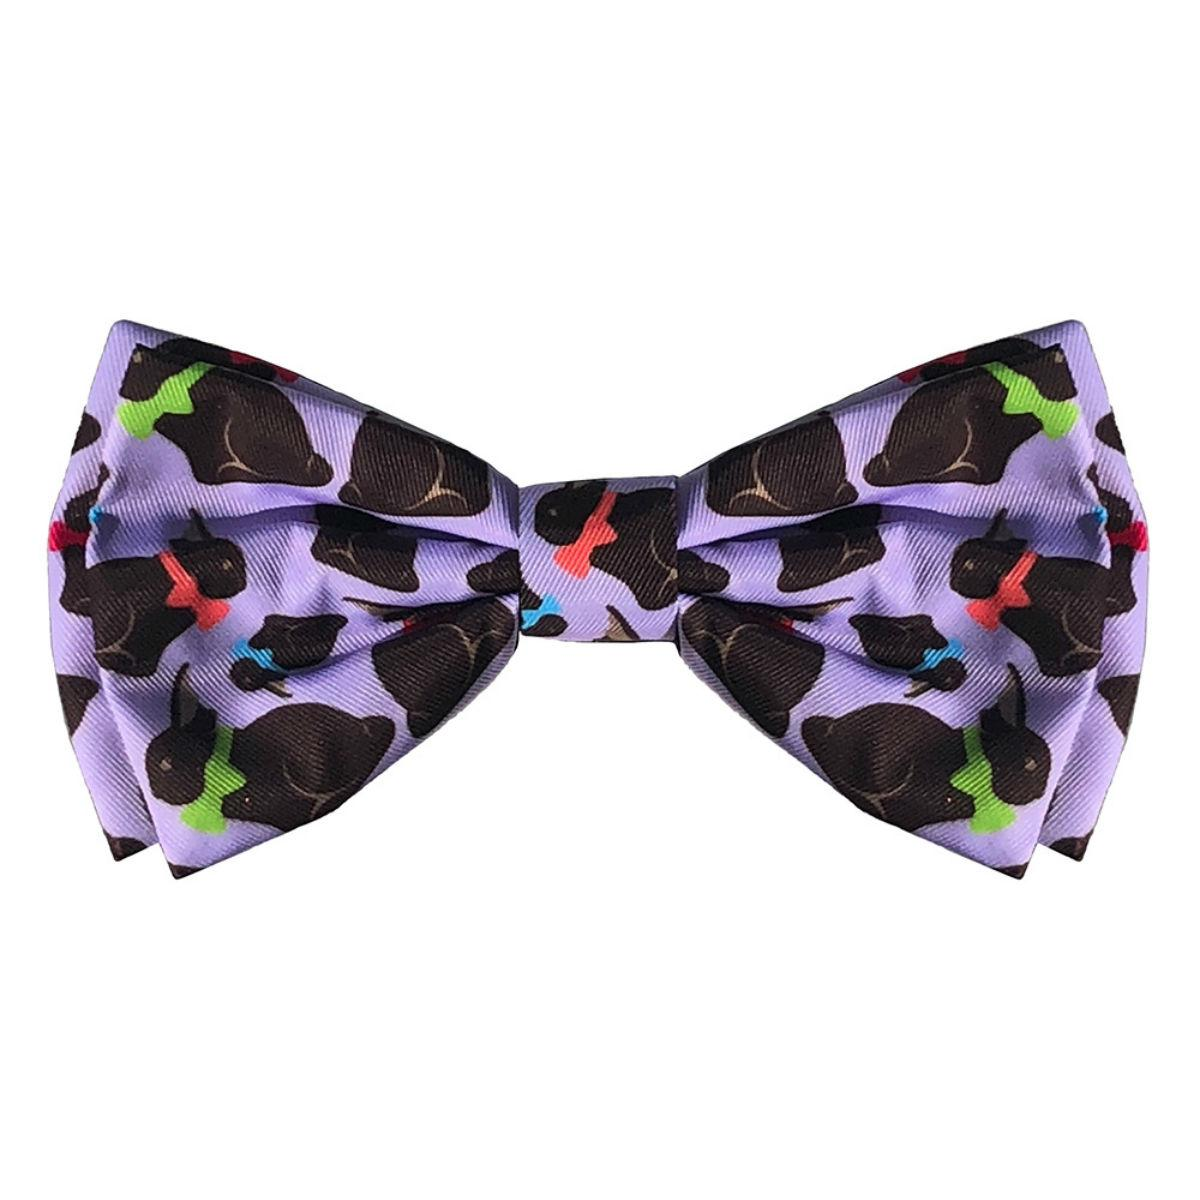 Huxley & Kent Dog and Cat Bow Tie Collar Attachment - Chocolate Bunny